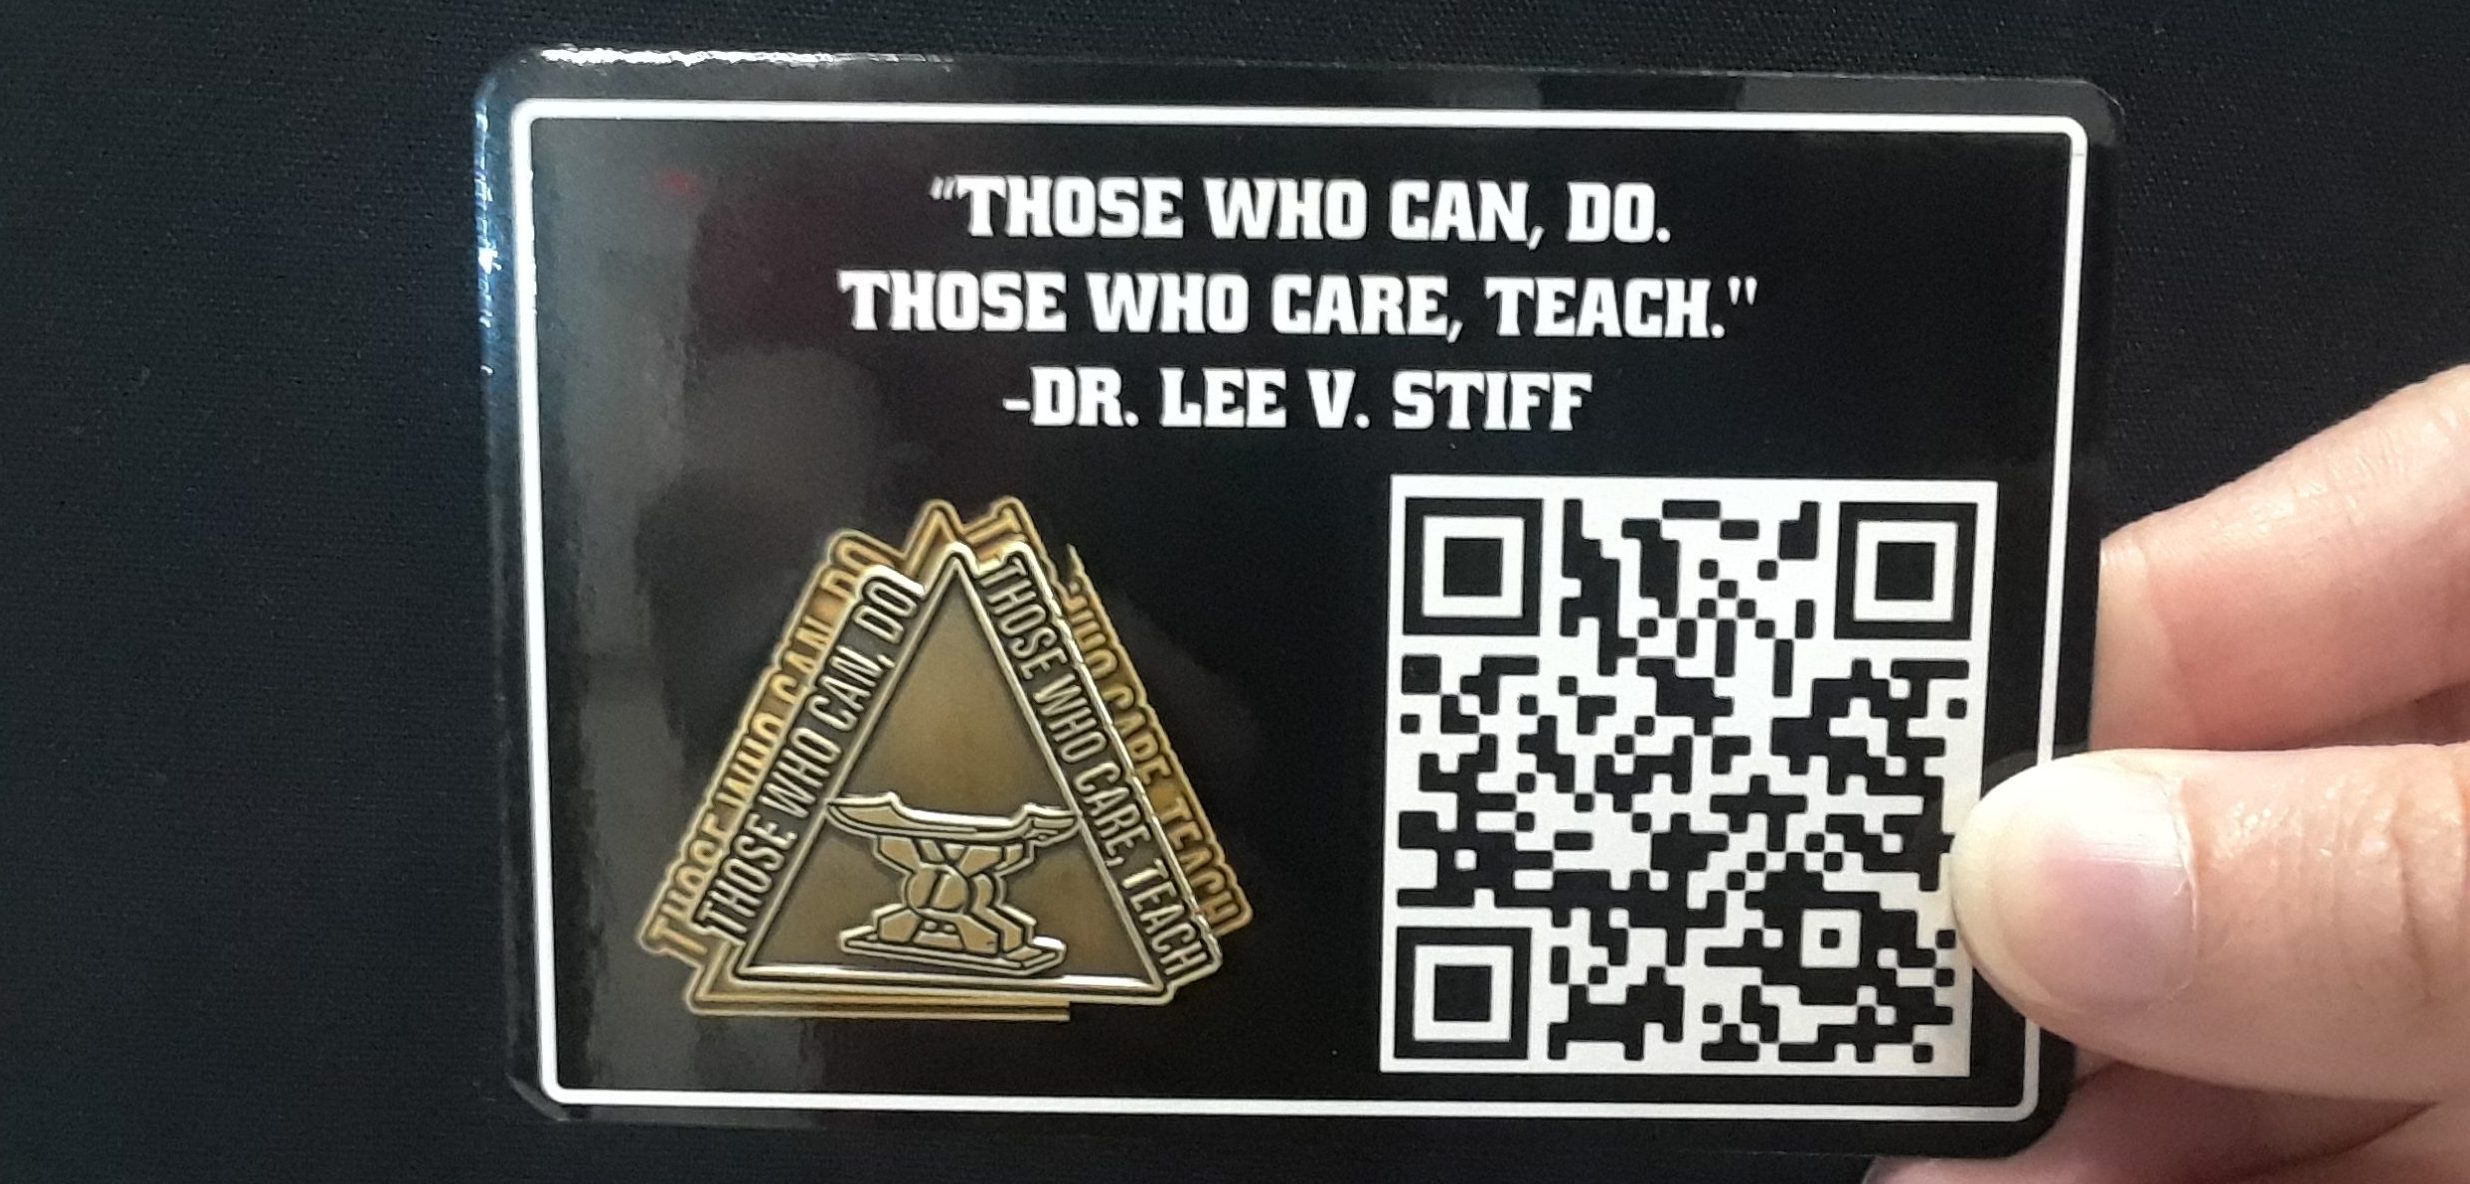 """A pin worn by NC State College of Education faculty in honor of Lee V. Stiff, Ph.D. says """"those who care, teach."""""""